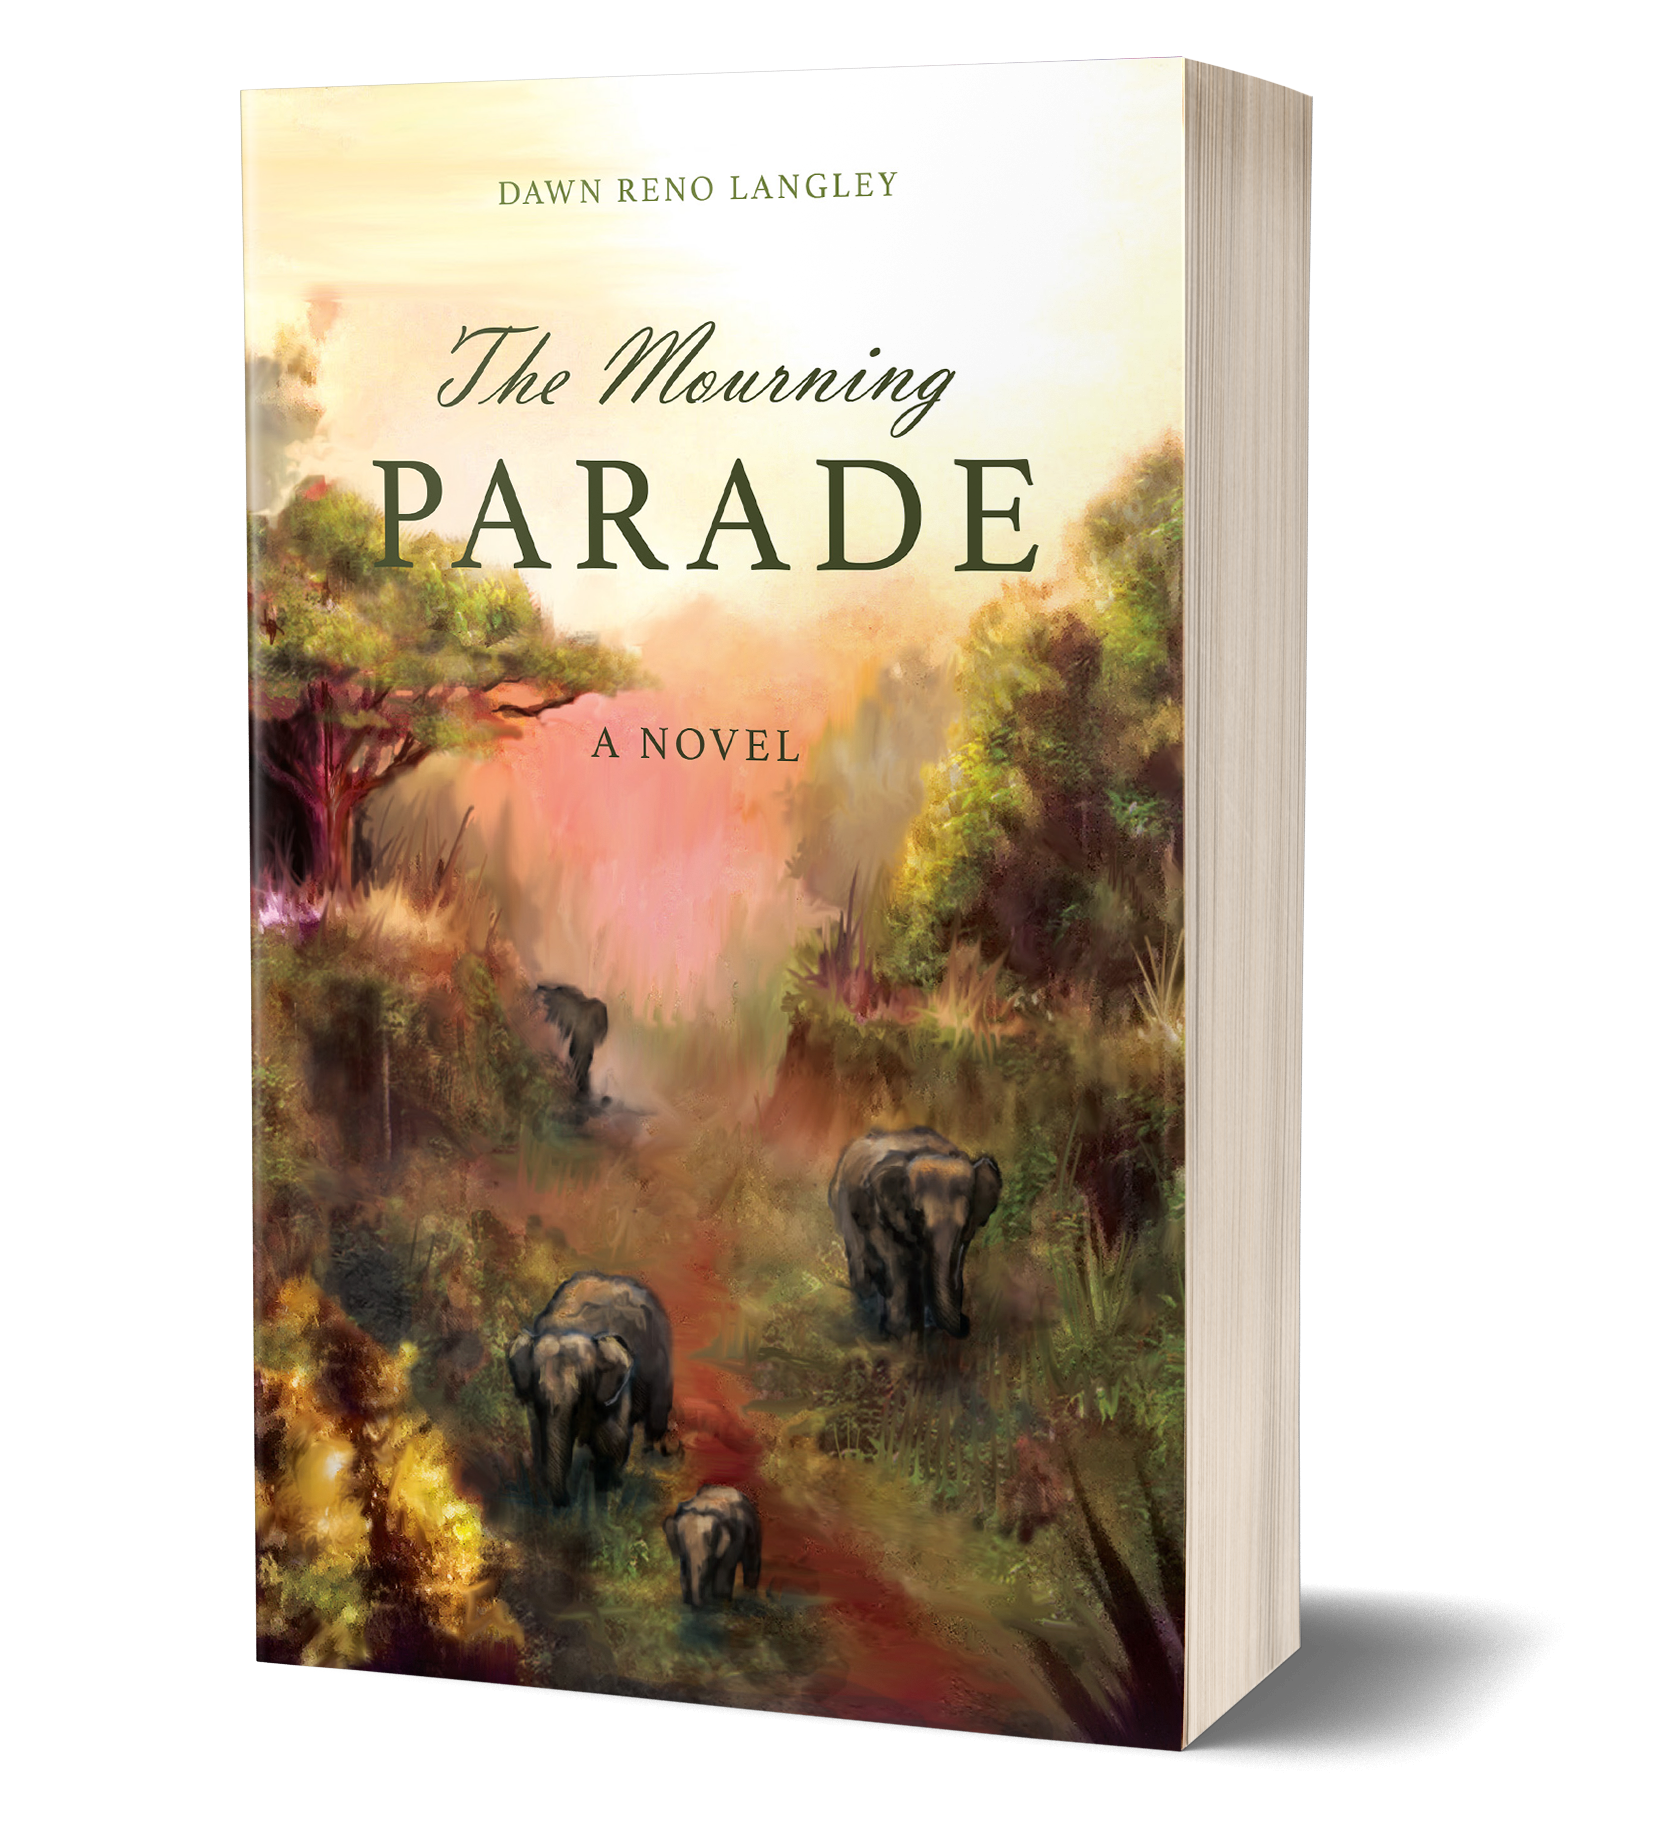 The Mourning Parade book cover, water color cover, elephants, trees, walking along path